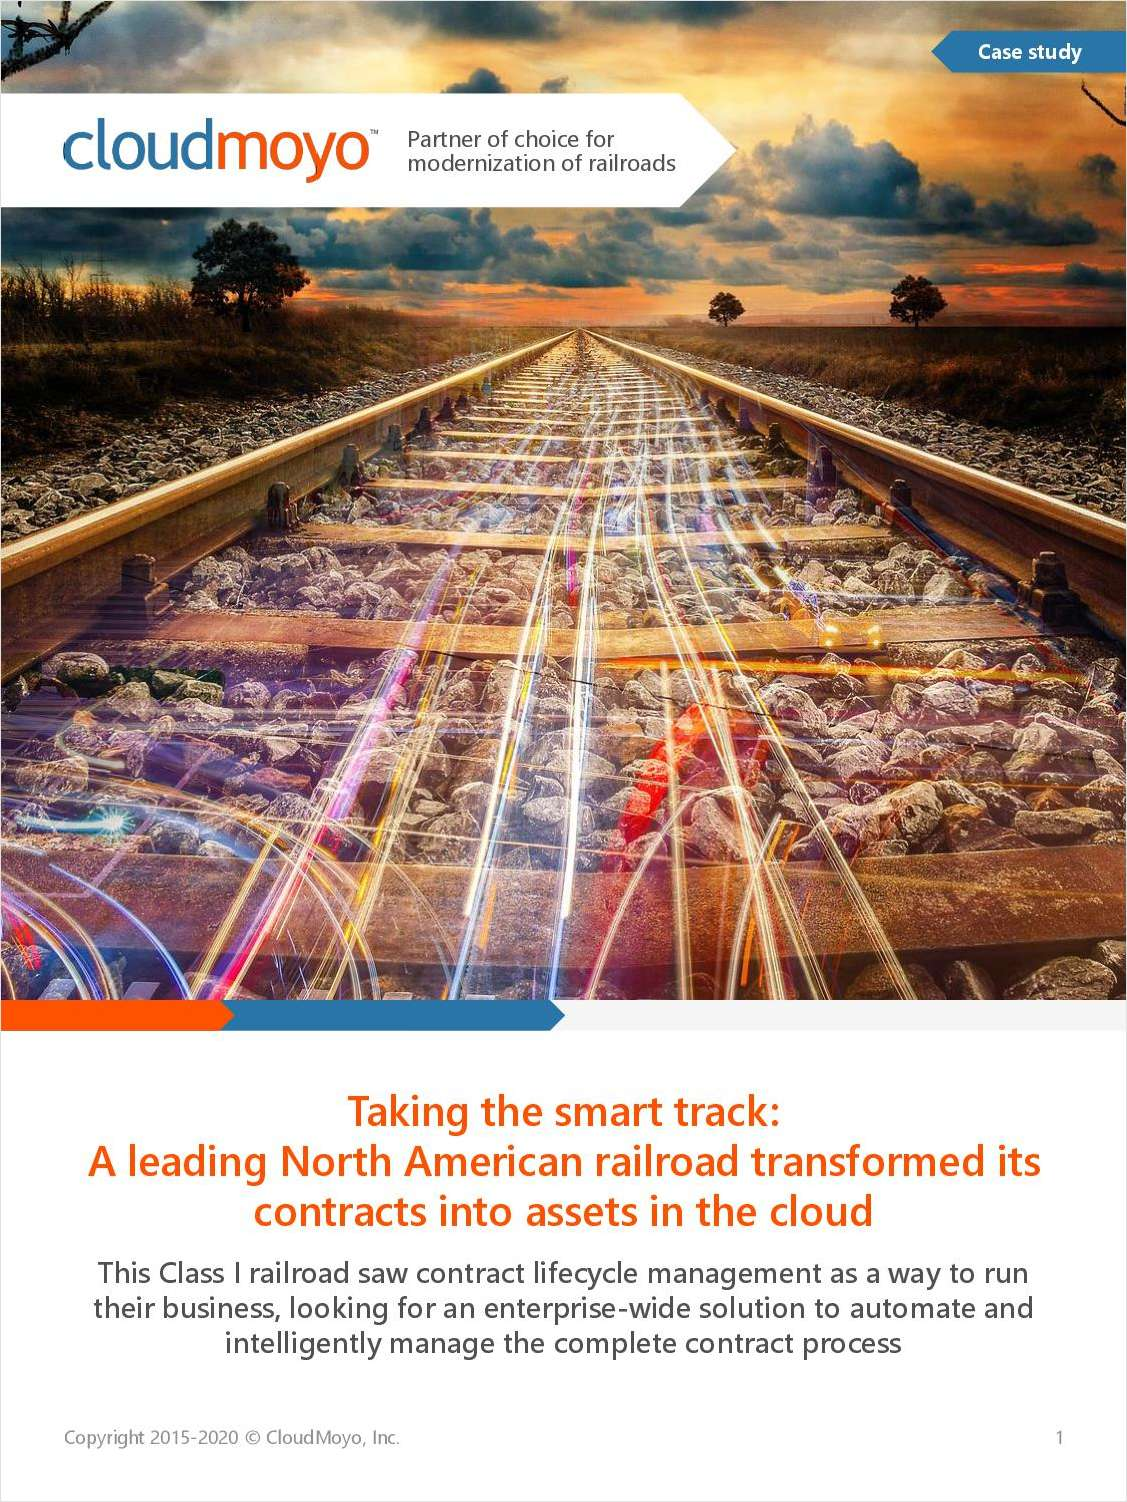 Taking the Smart Track: A Leading North American Railroad Transformed Its Contracts Into Assets in the Cloud